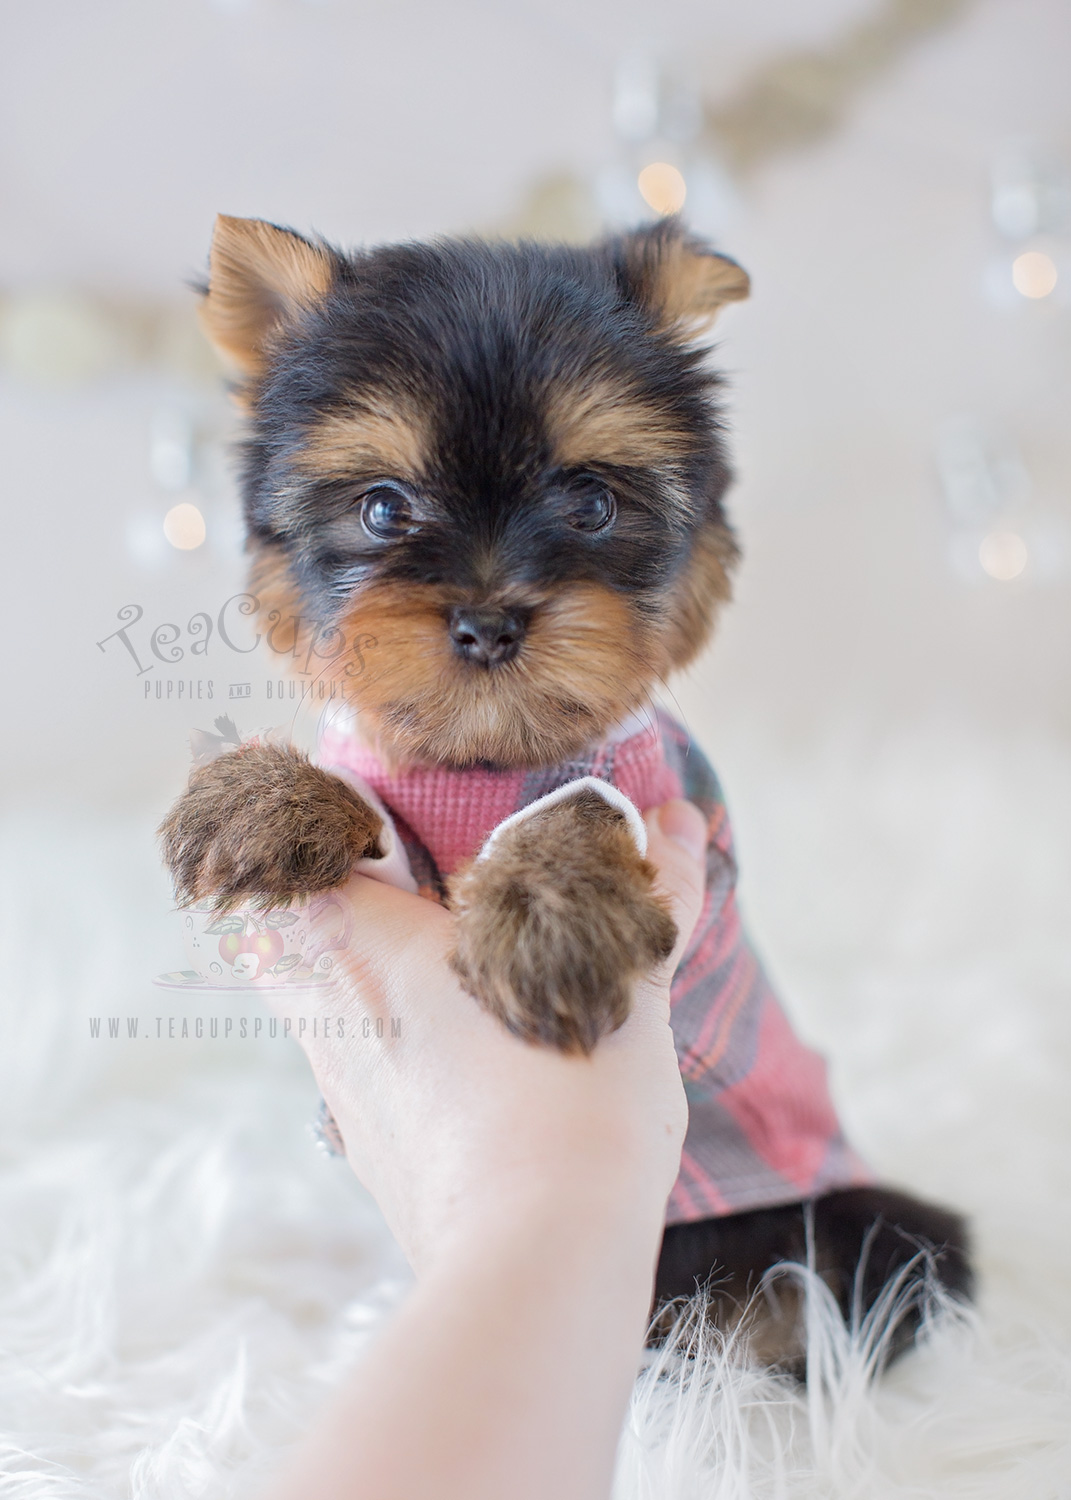 For Sale Teacup Puppies #320 Tiny Yorkie Puppy